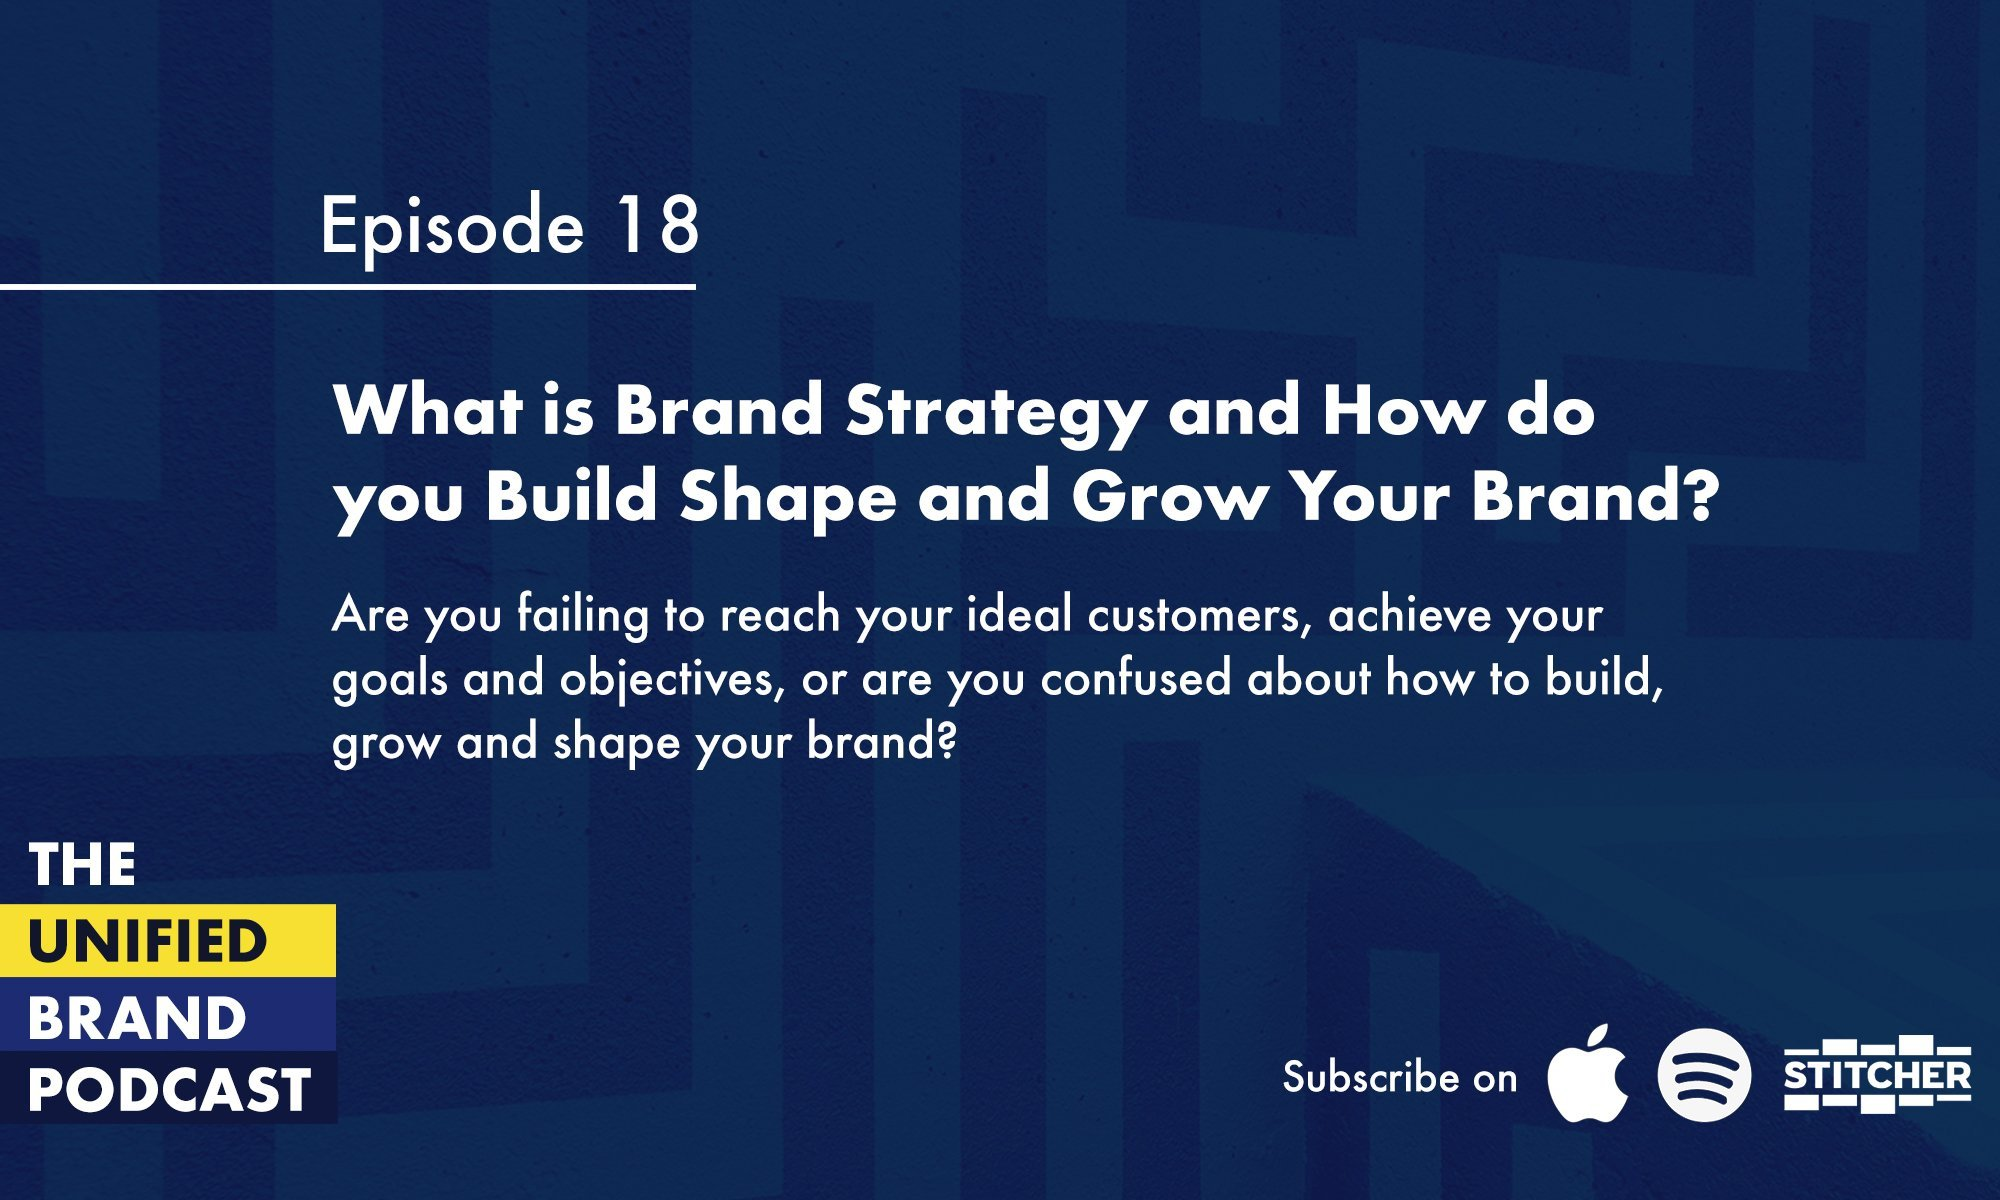 What is brand strategy and how do you build shape and grow your brand?